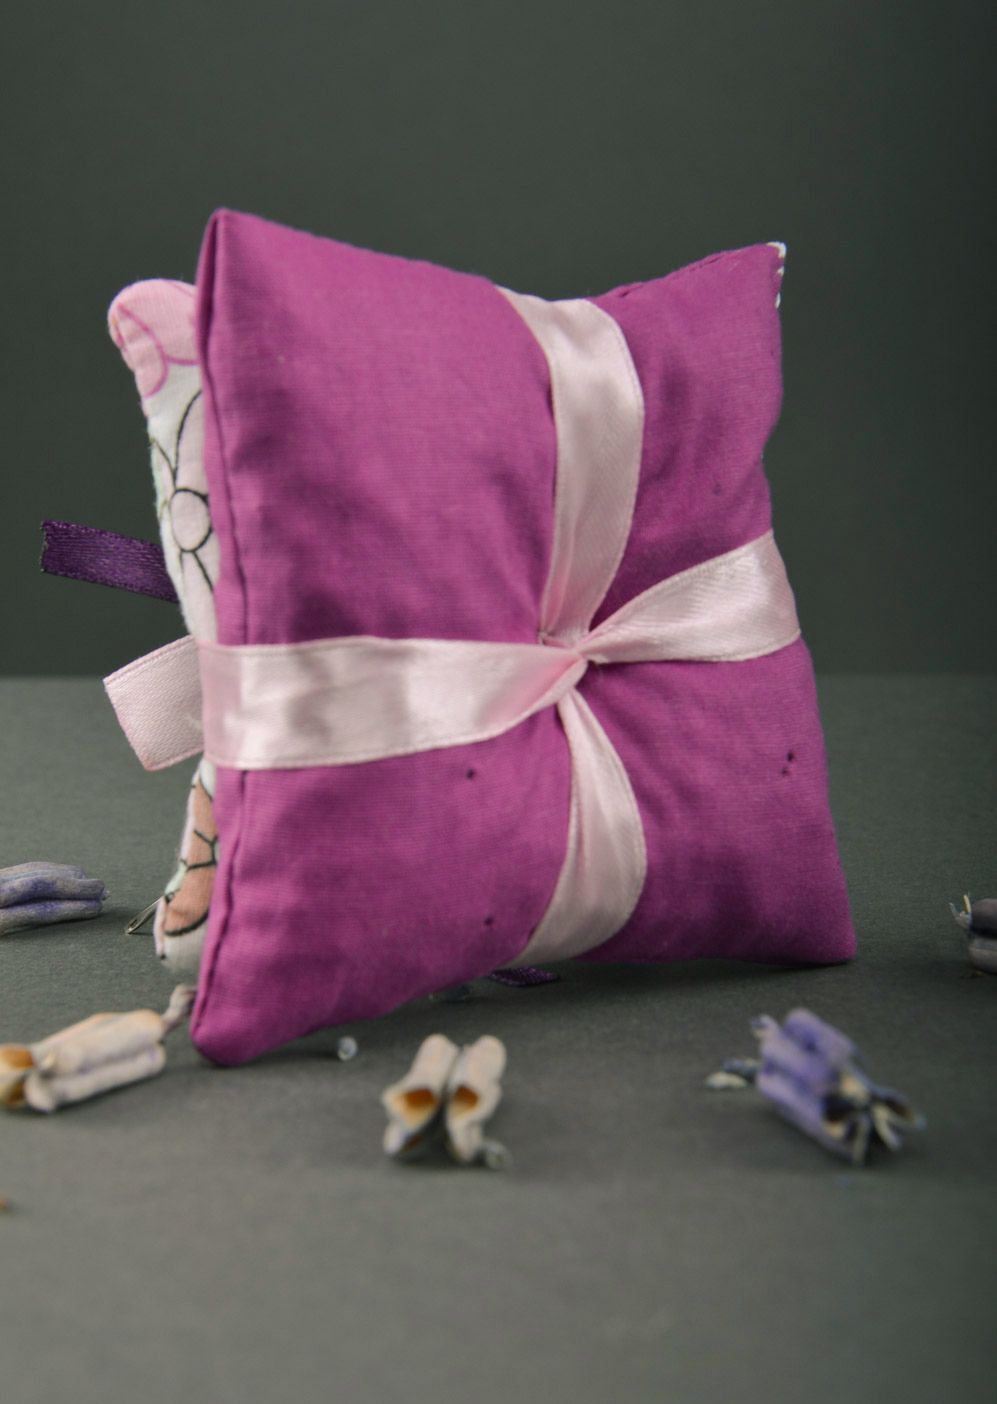 Tender handmade sachet pillows sewn of fabric with ribbons with mint Lilac  photo 2